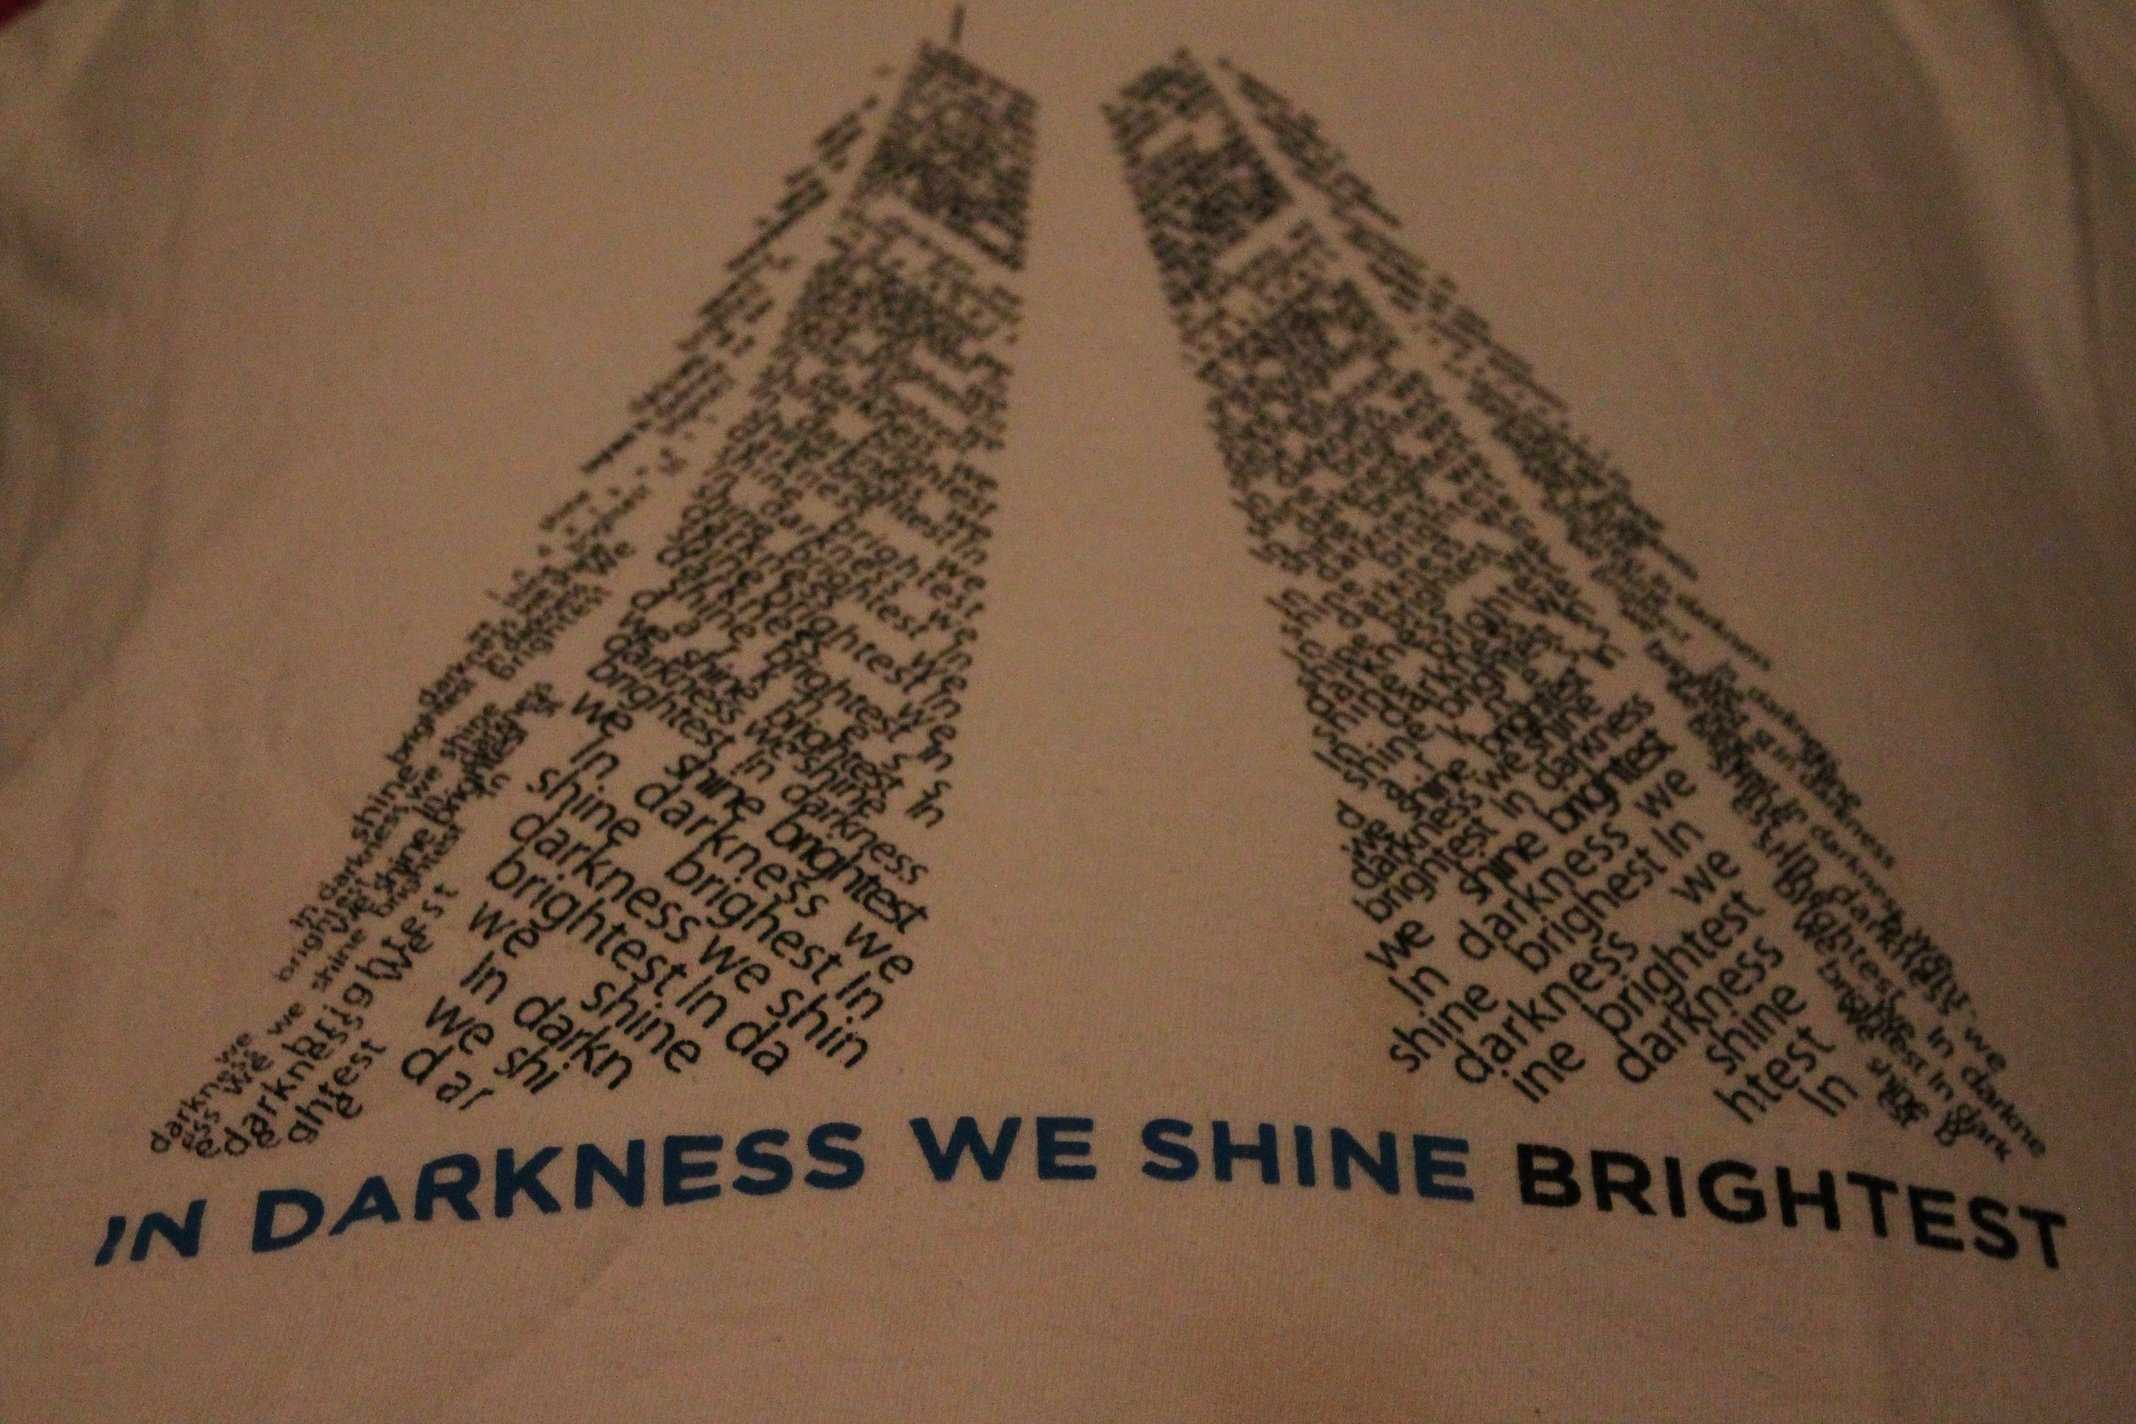 A 9/11 shirt that honors the tragic event